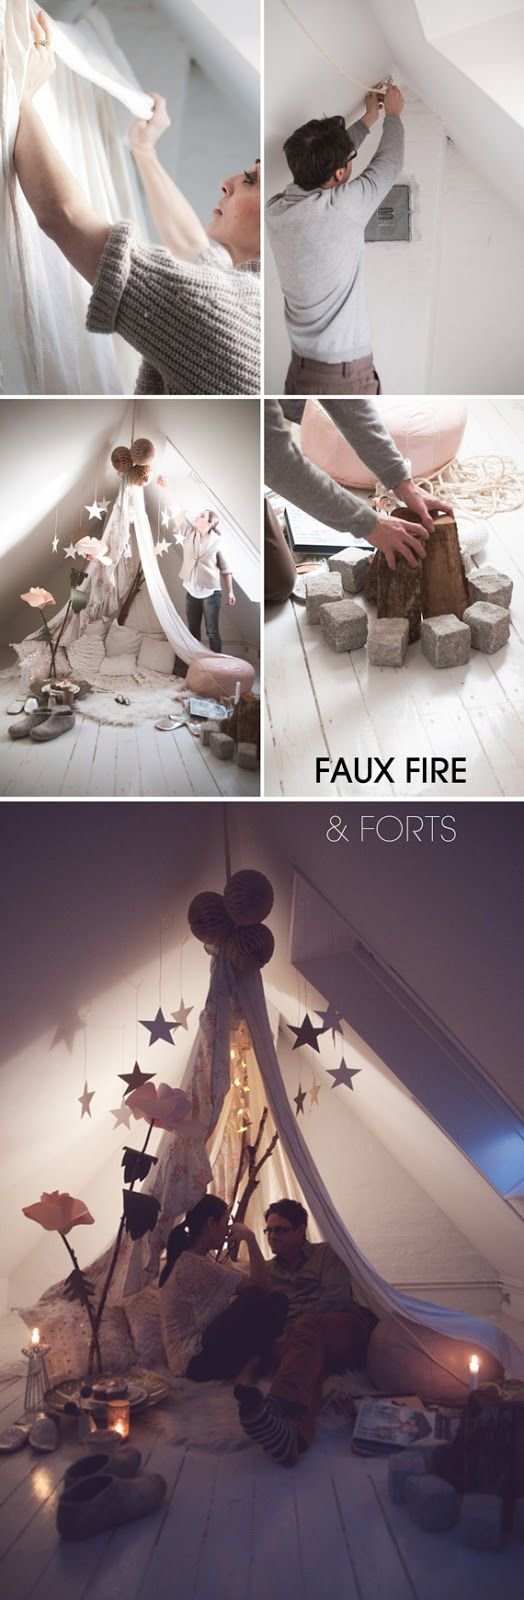 Faux Fire and Forts - wonderful ideas for kids